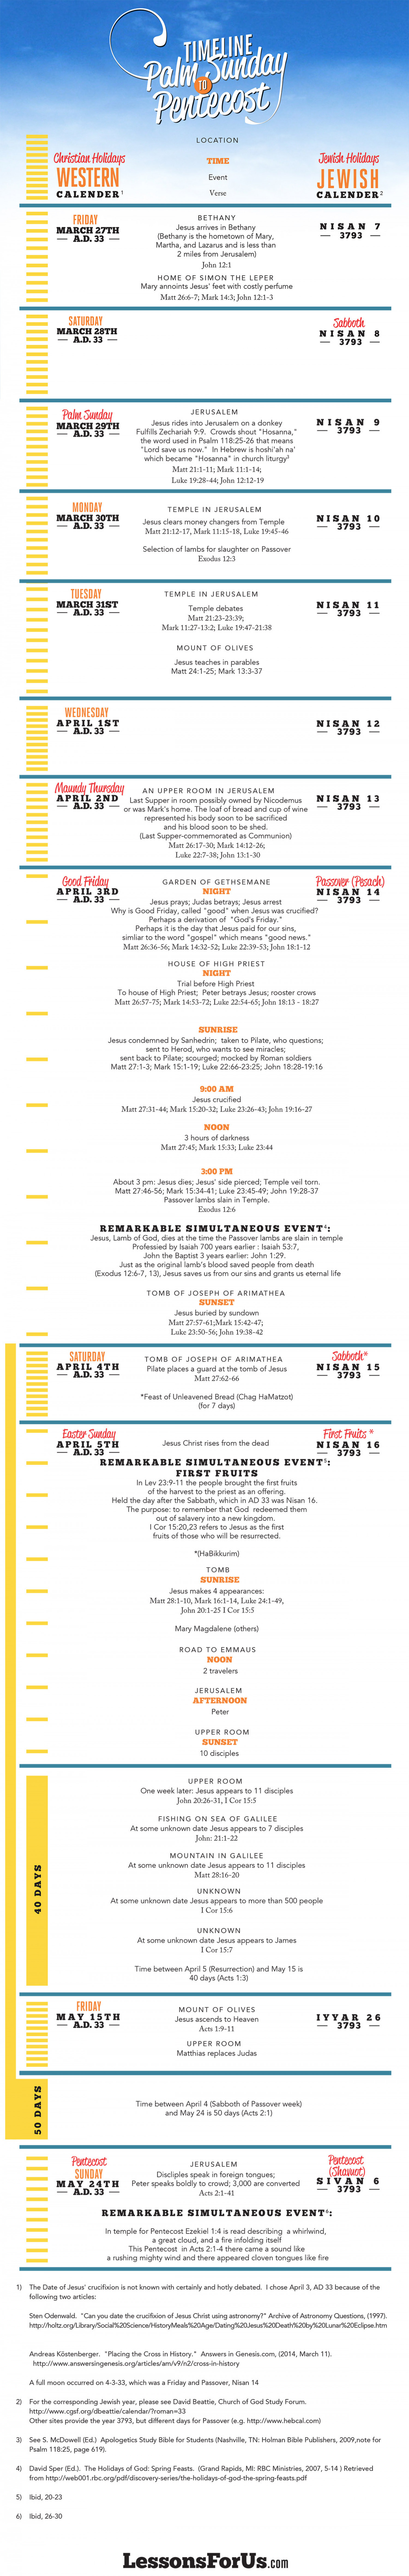 Timeline: Palm Sunday to Pentecost Infographic